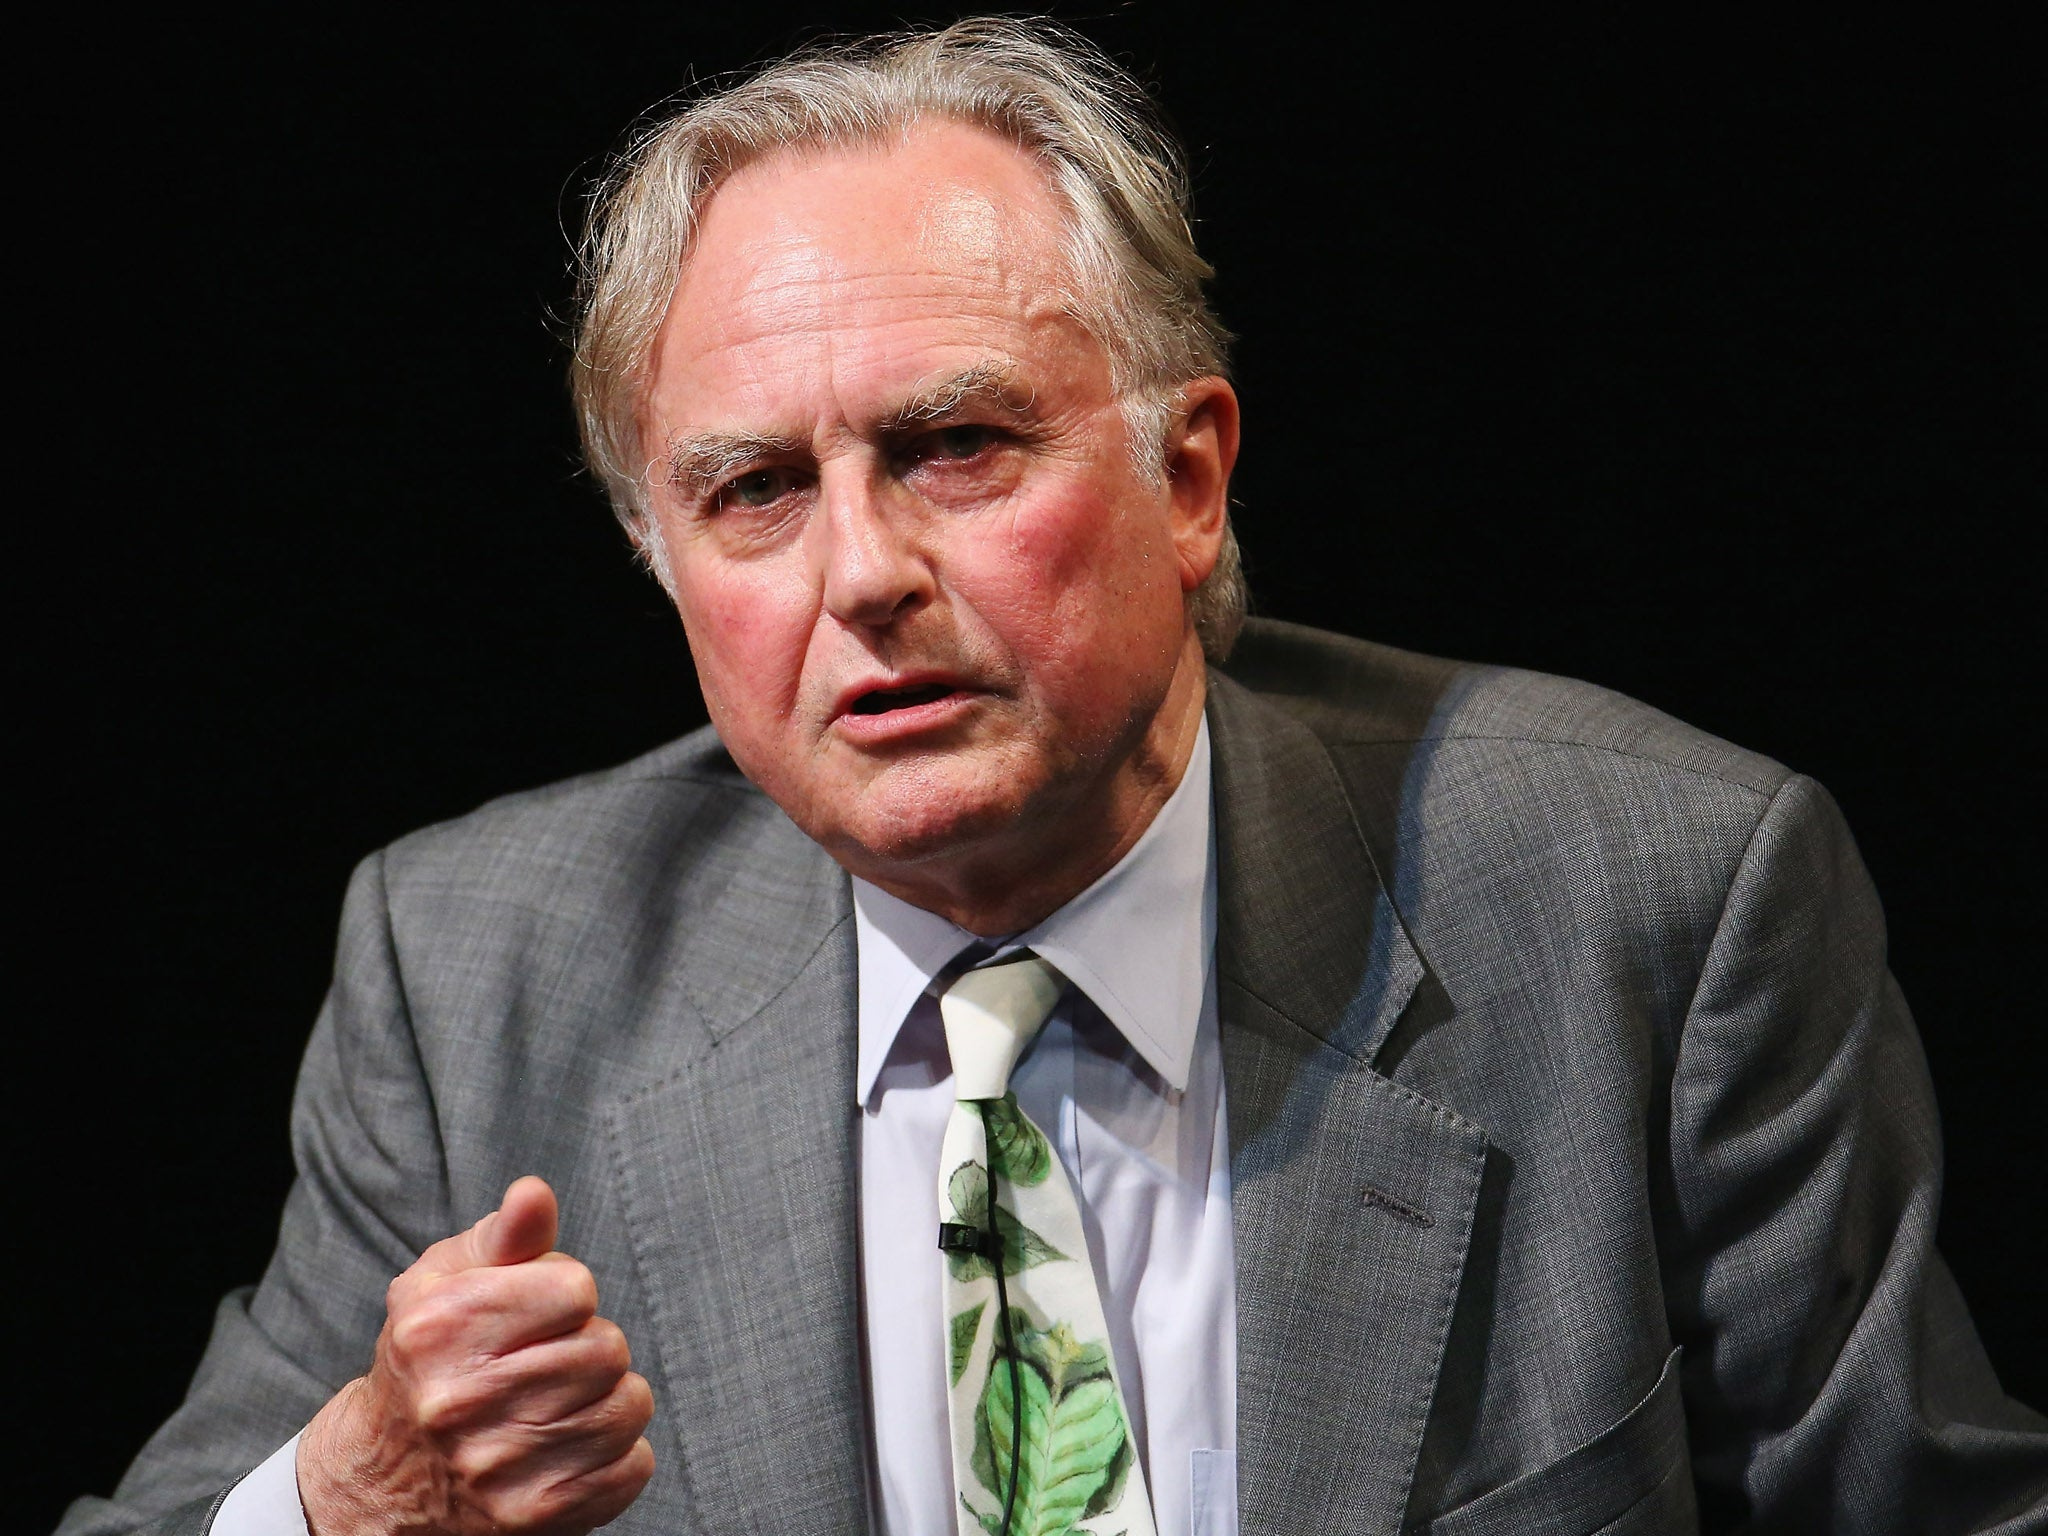 Richard Dawkins accused of Islamophobia after comparing 'lovely church bells' to 'aggressive-sounding Allahu Akhbar'